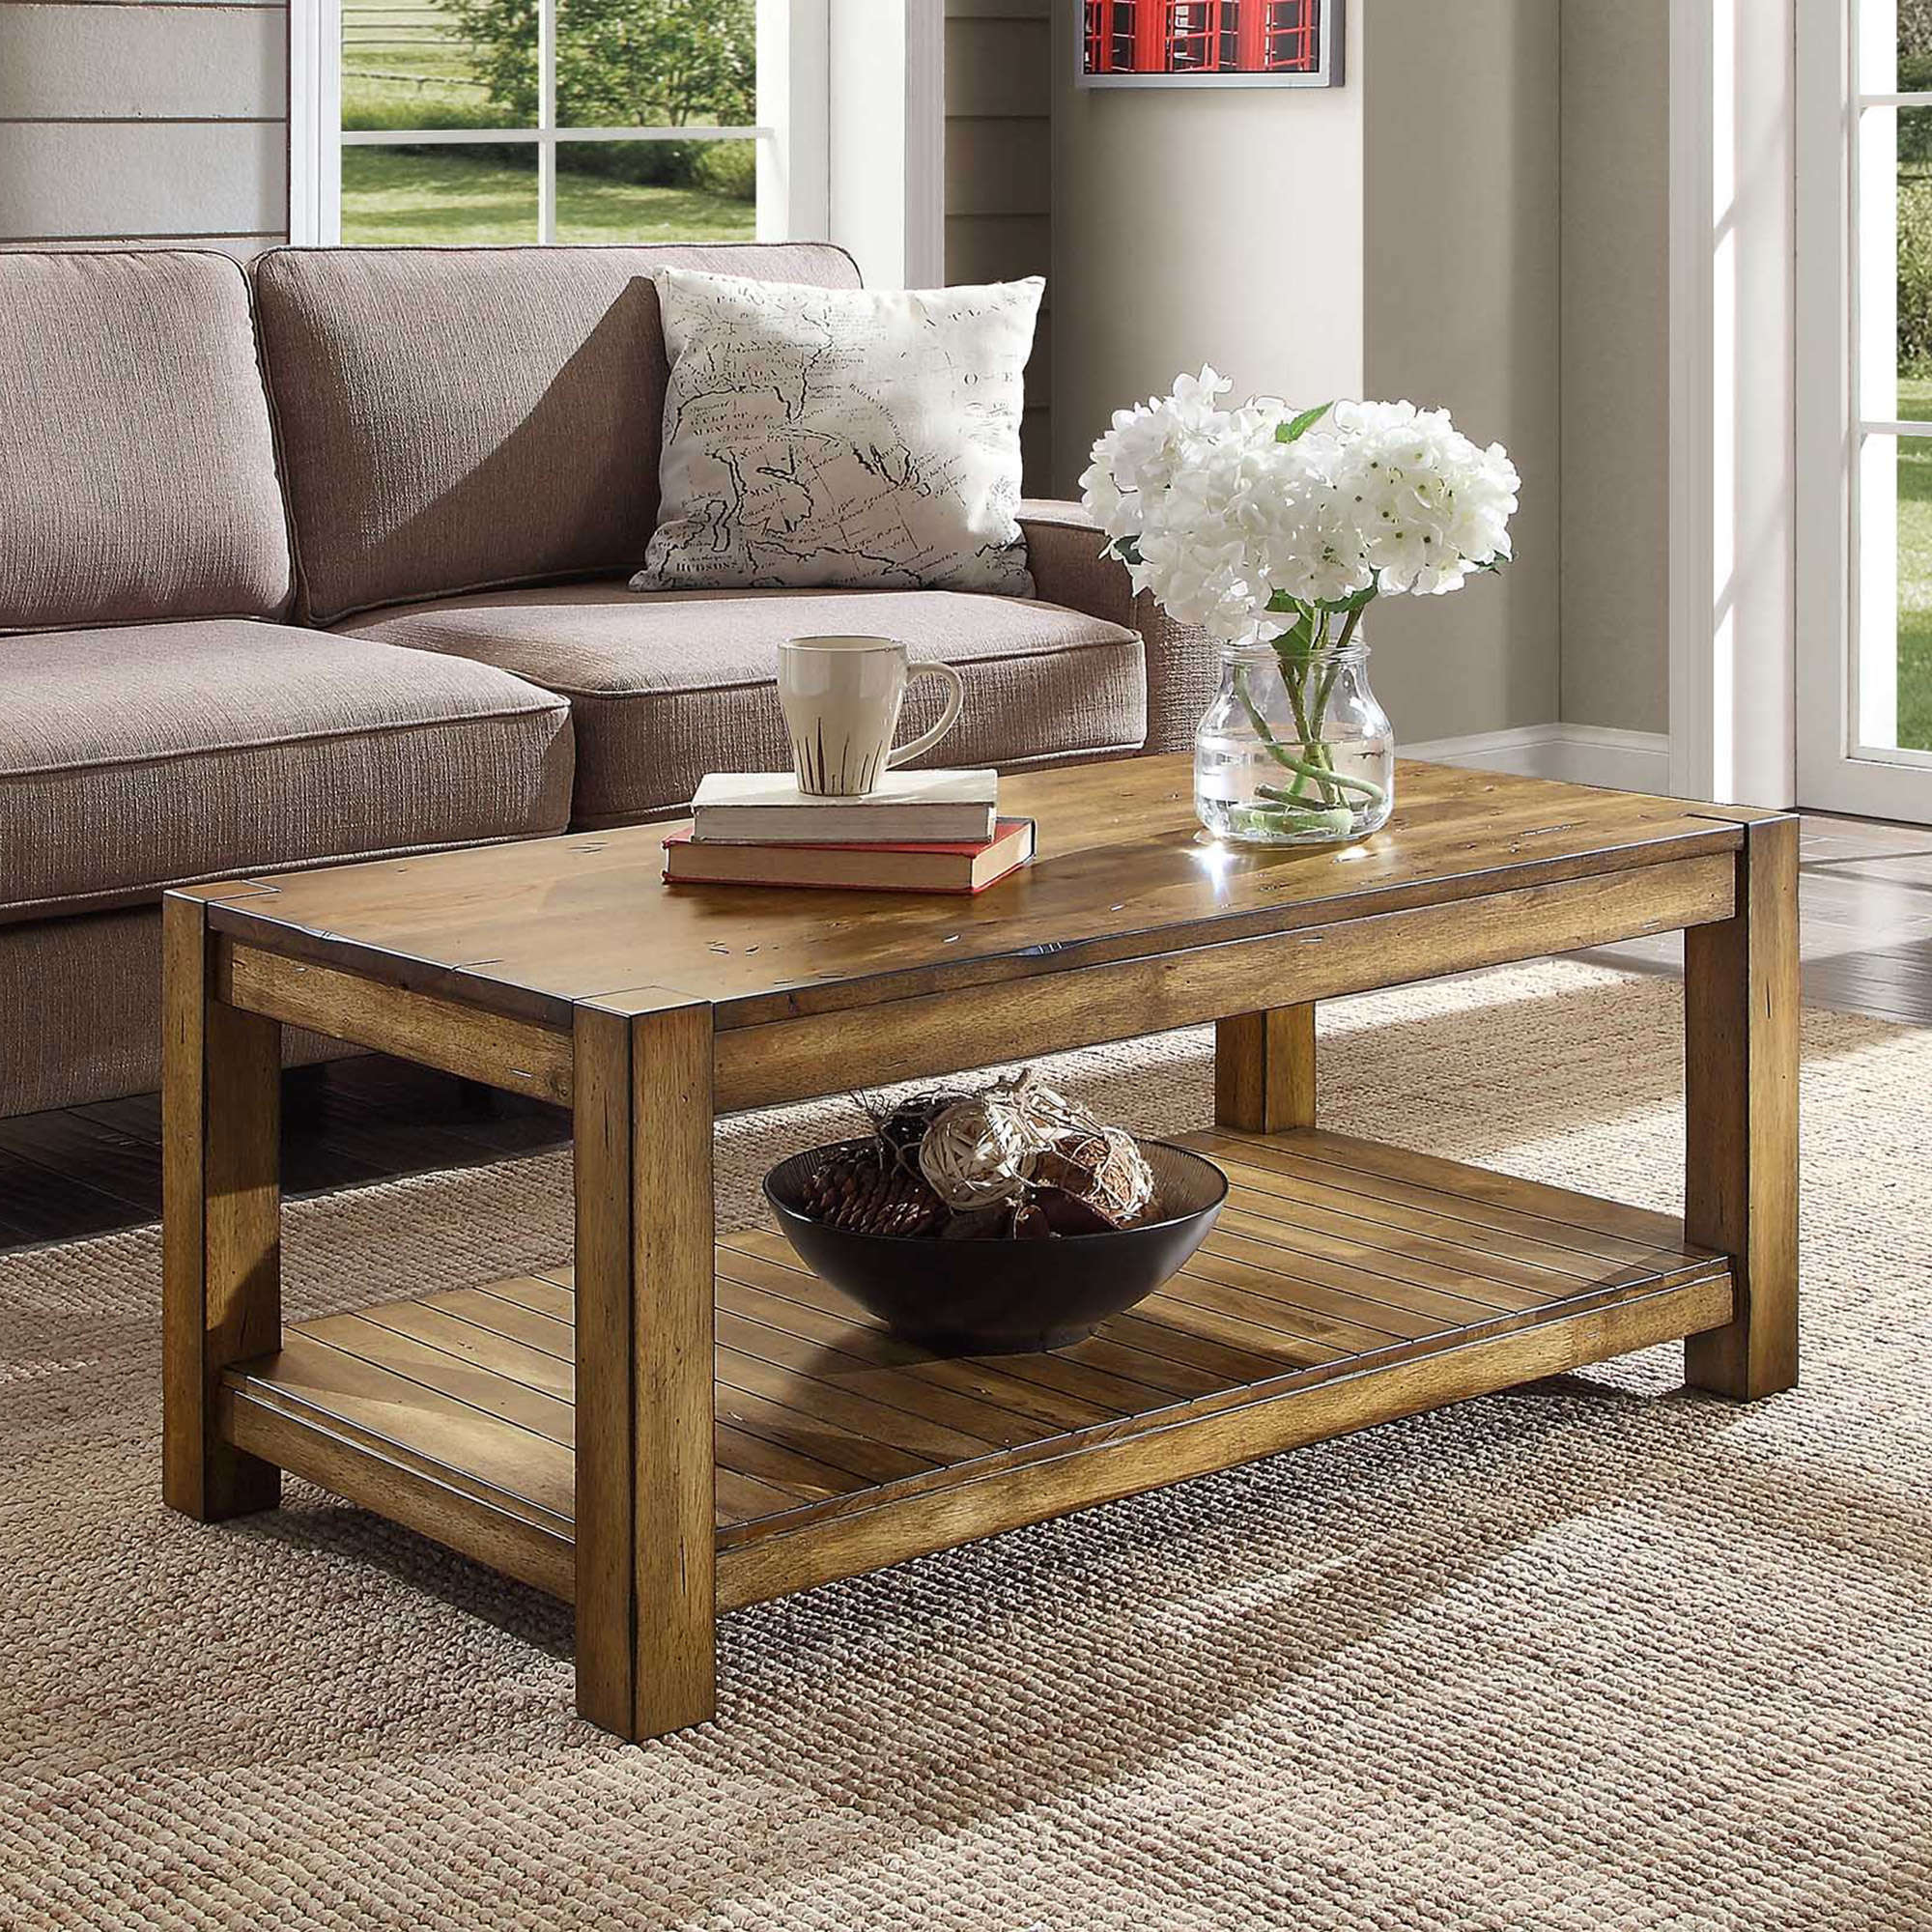 Better Homes and Gardens Bryant Coffee Table, Rustic Brown Finish by WHALEN LIMITED